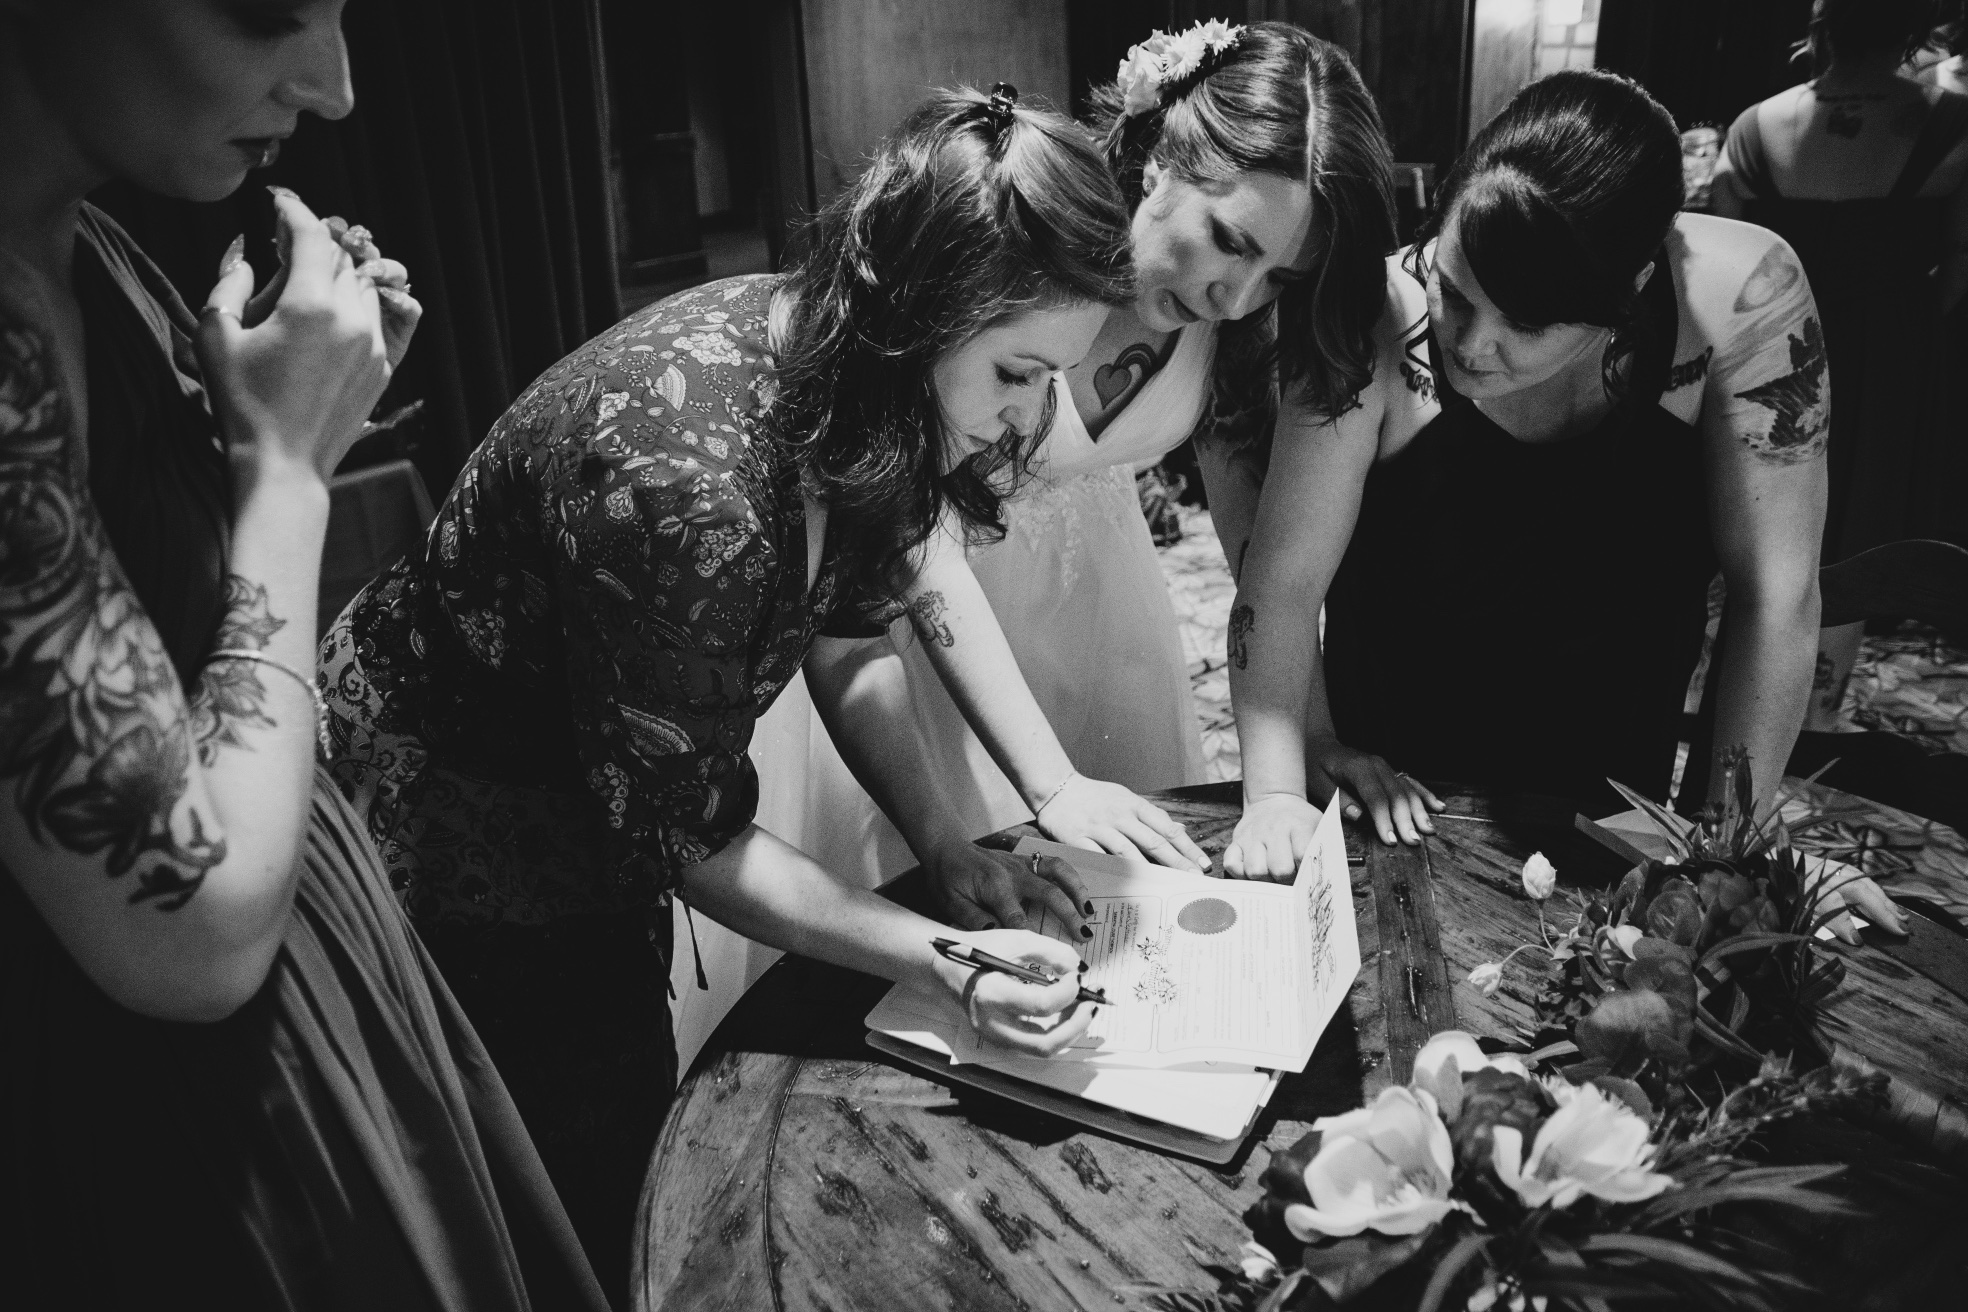 lindseyjanephoto_wedding0068.jpg